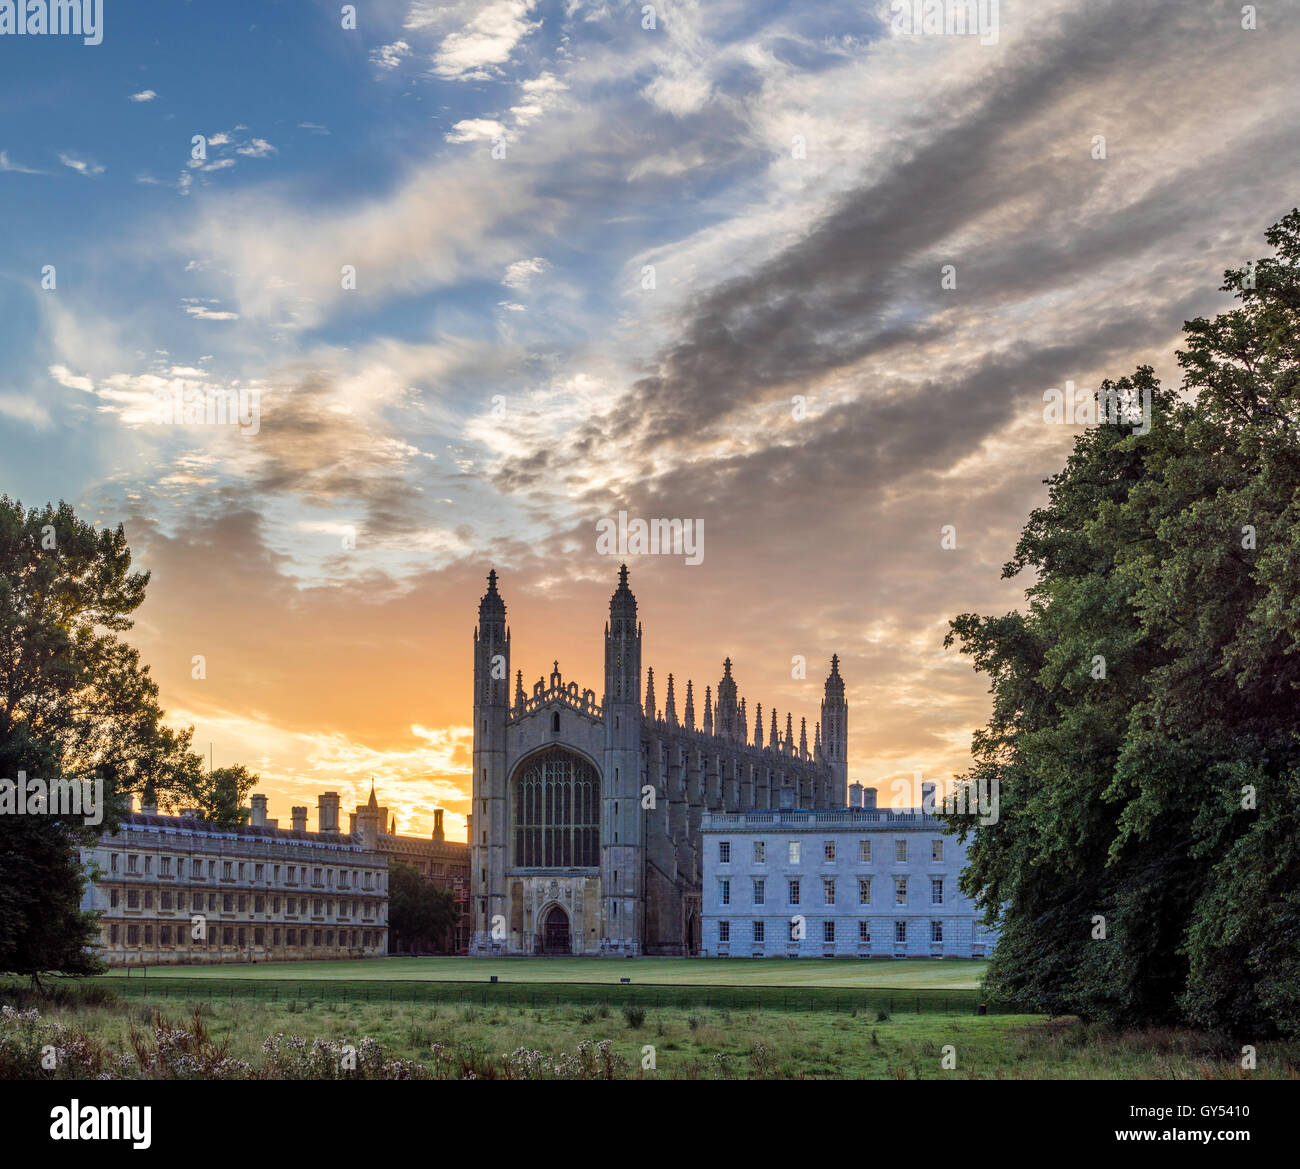 Dawn over King's College Chapel, Cambridge, UK - Stock Image